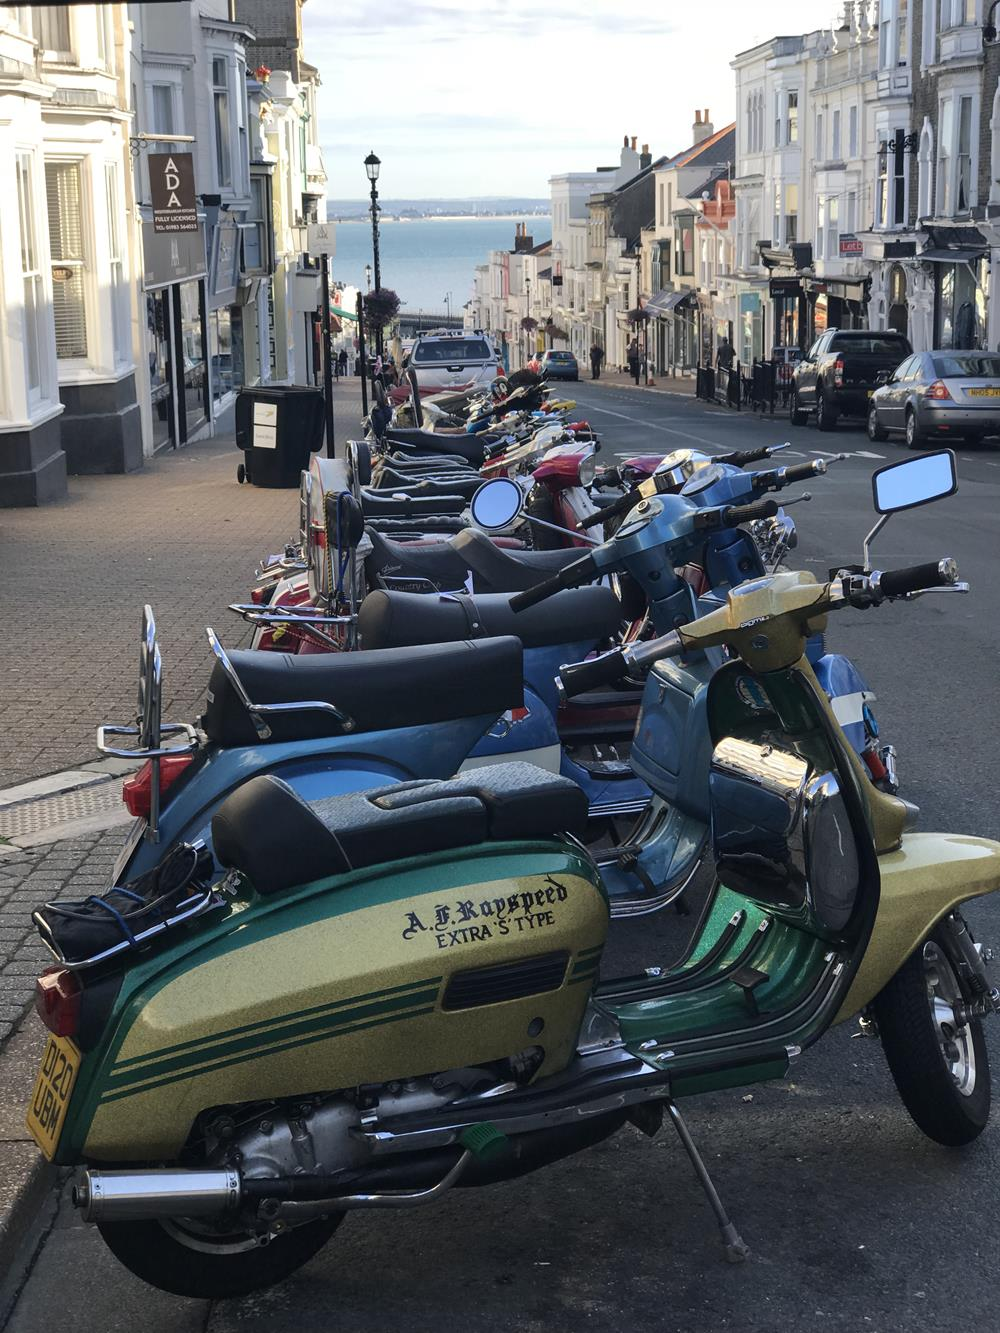 View down Union Street in Ryde with scooters in the foreground